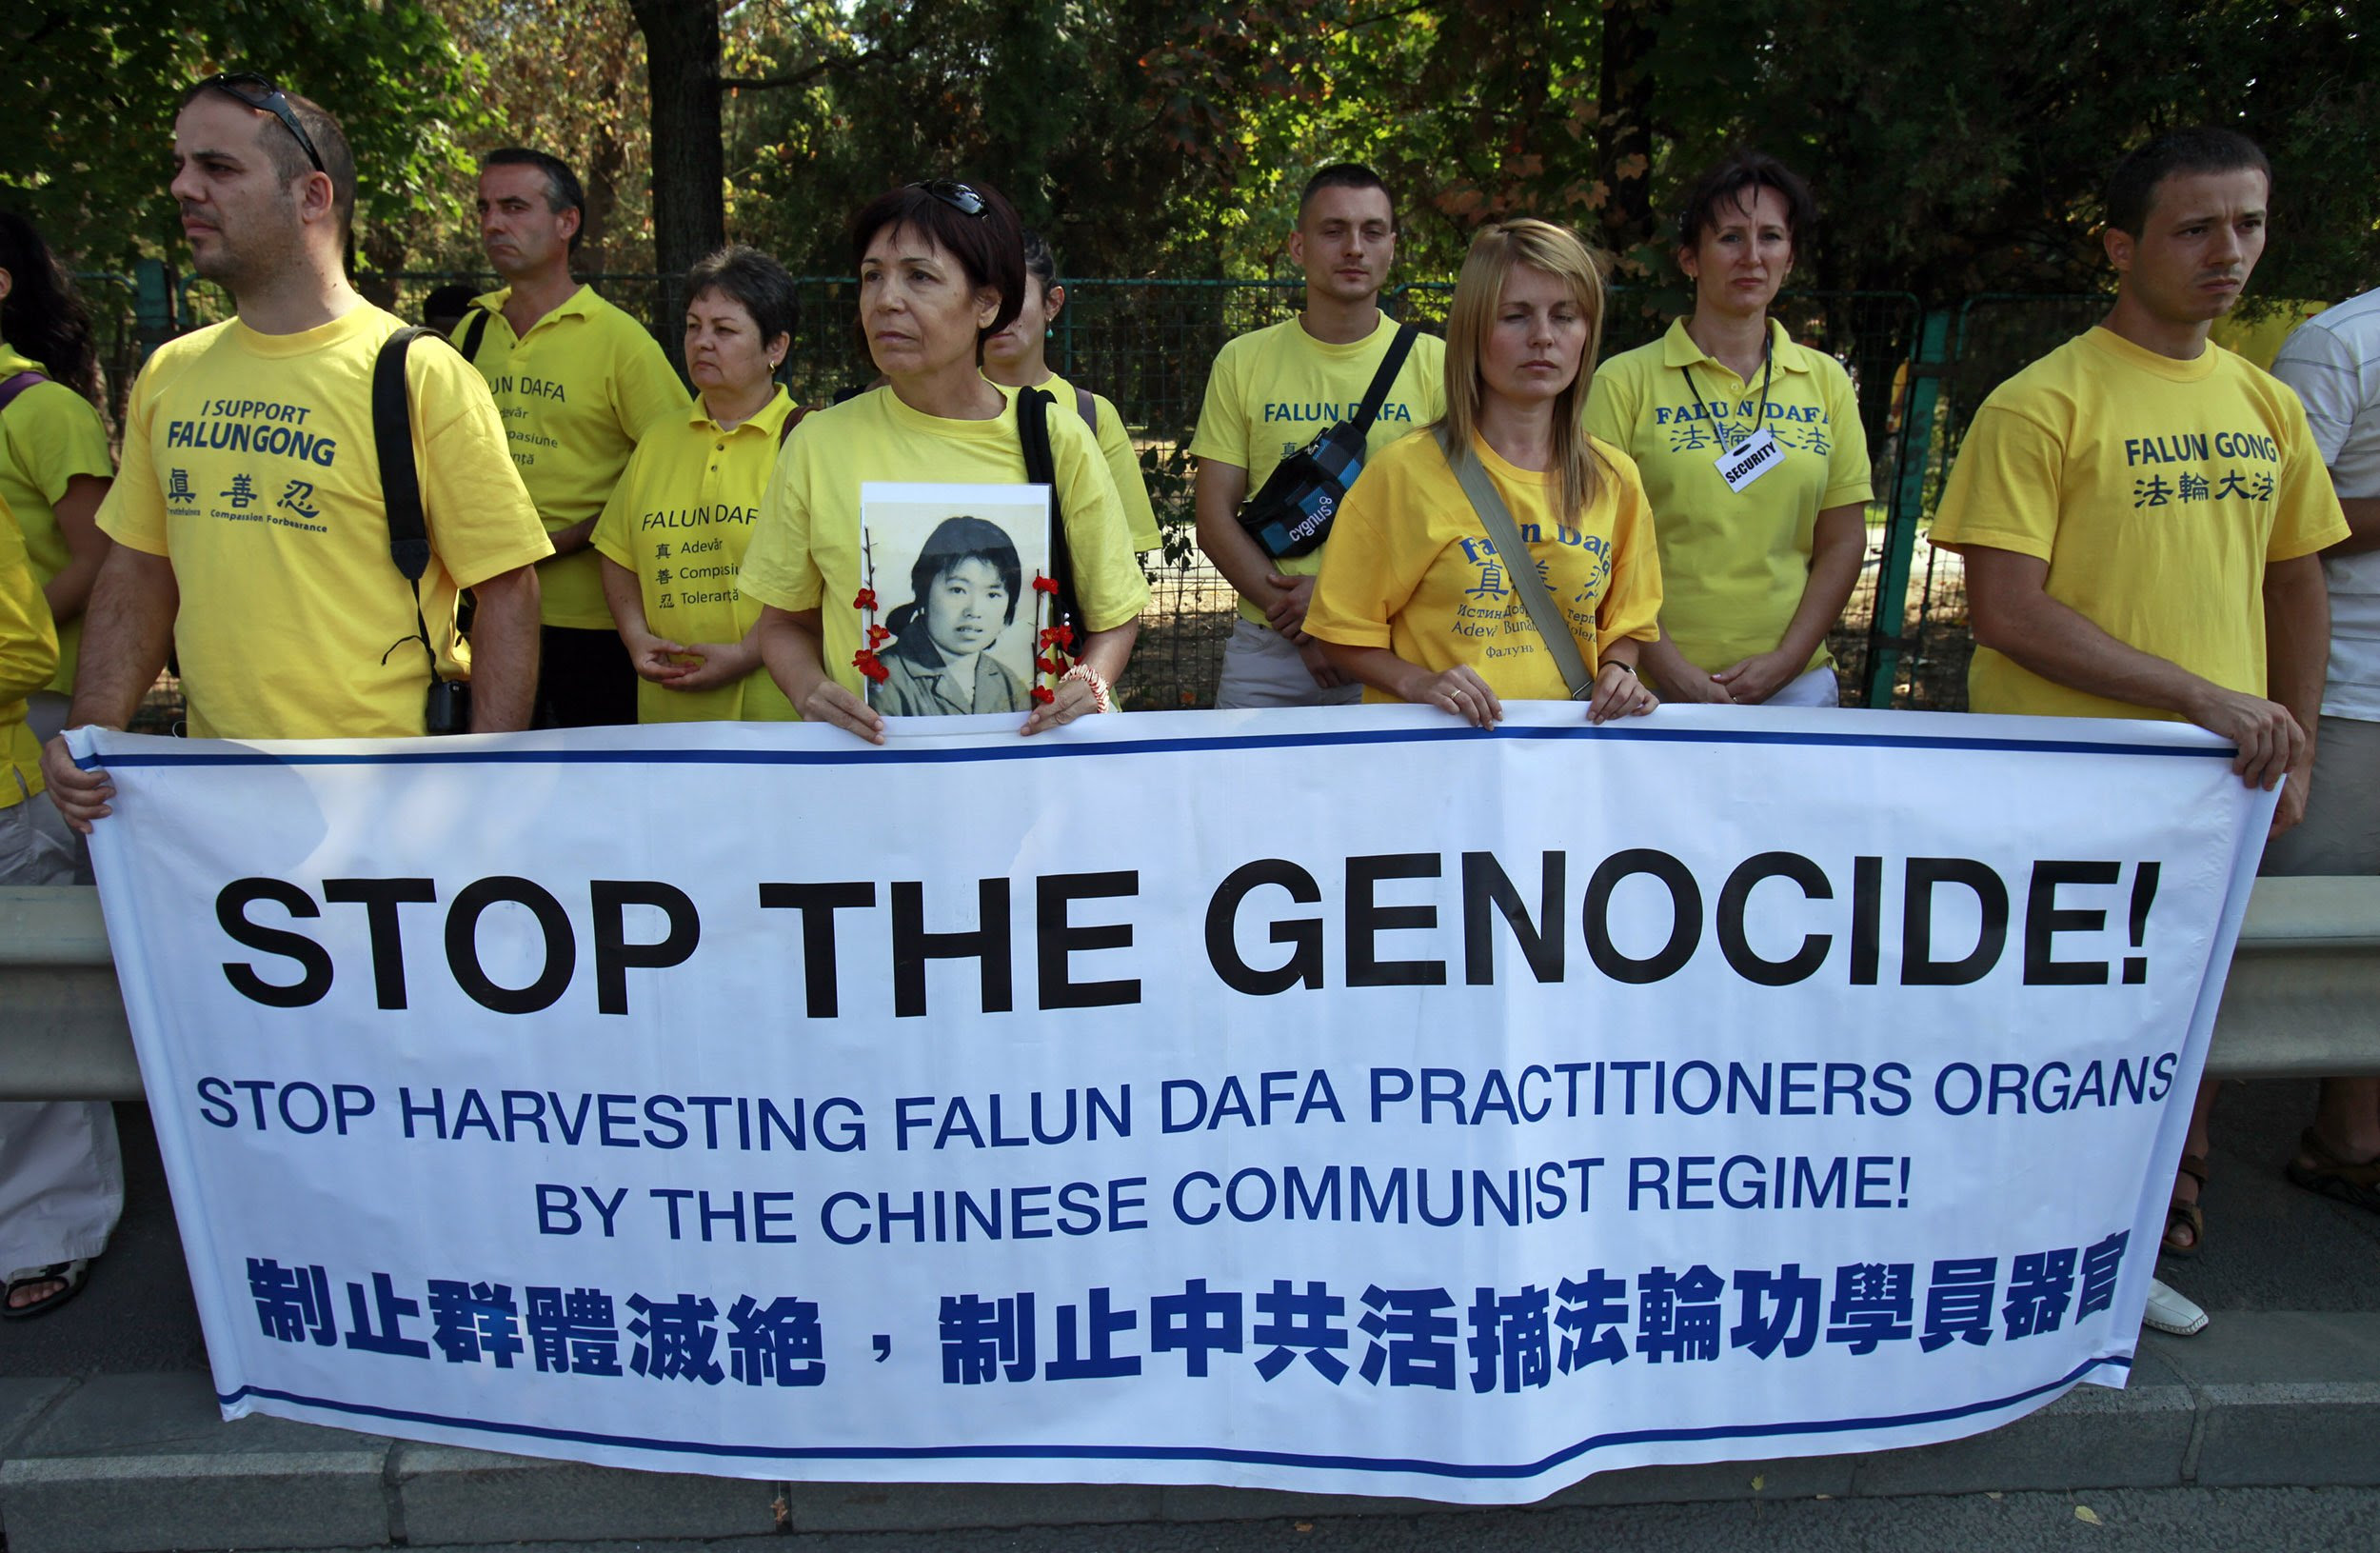 Falun Gong practitioners hold portraits of fellow Chinese practitioners as they protest against China's crackdown on Falun Gong followers in front of the Chinese embassy in Bucharest, Romania on September 24, 2011.